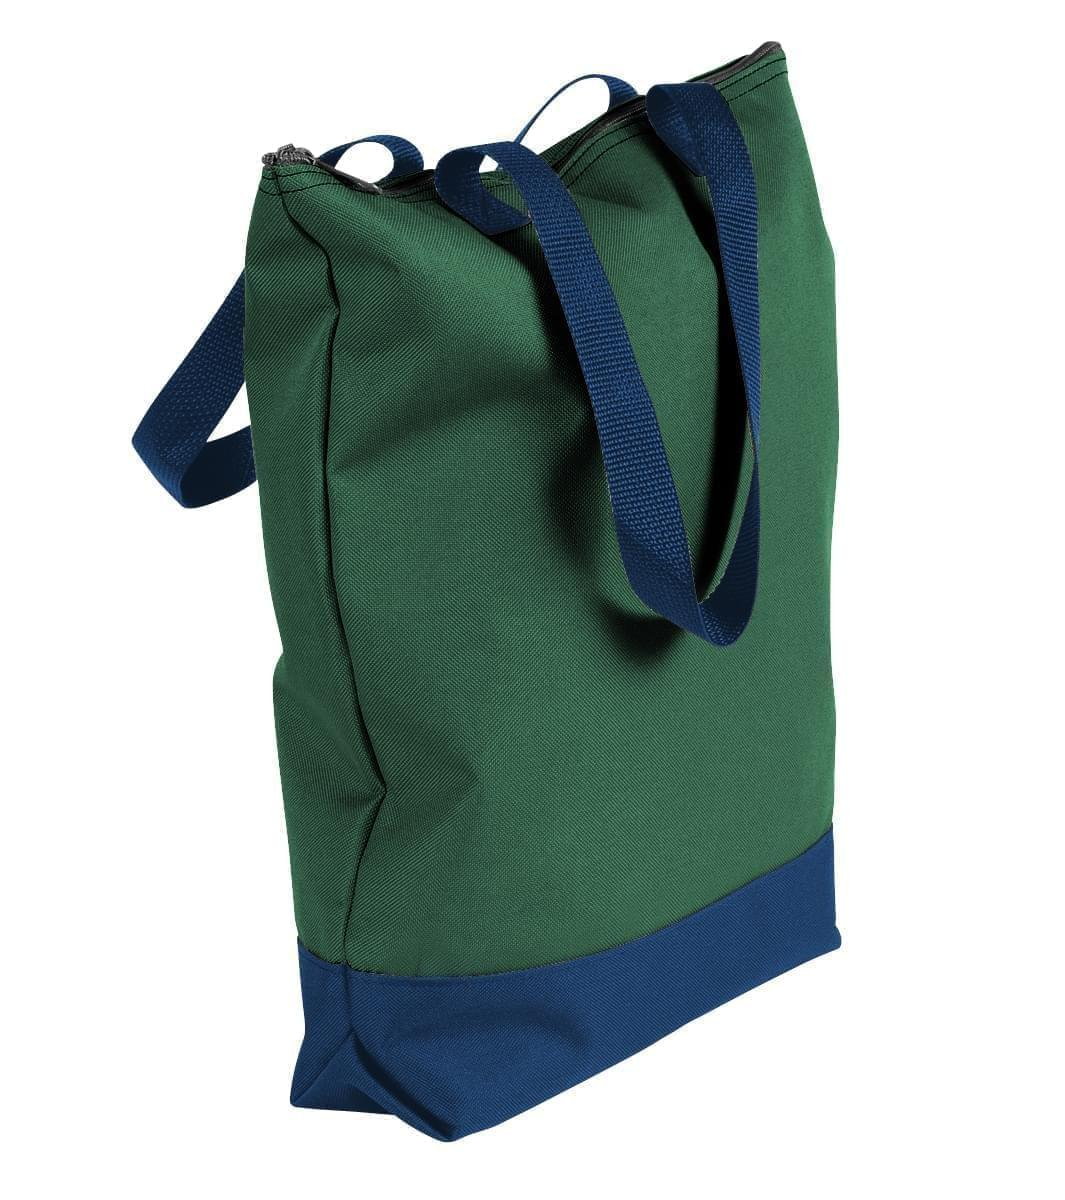 USA Made Canvas Portfolio Tote Bags, Hunter Green-Navy, 1AAMX1UAIZ